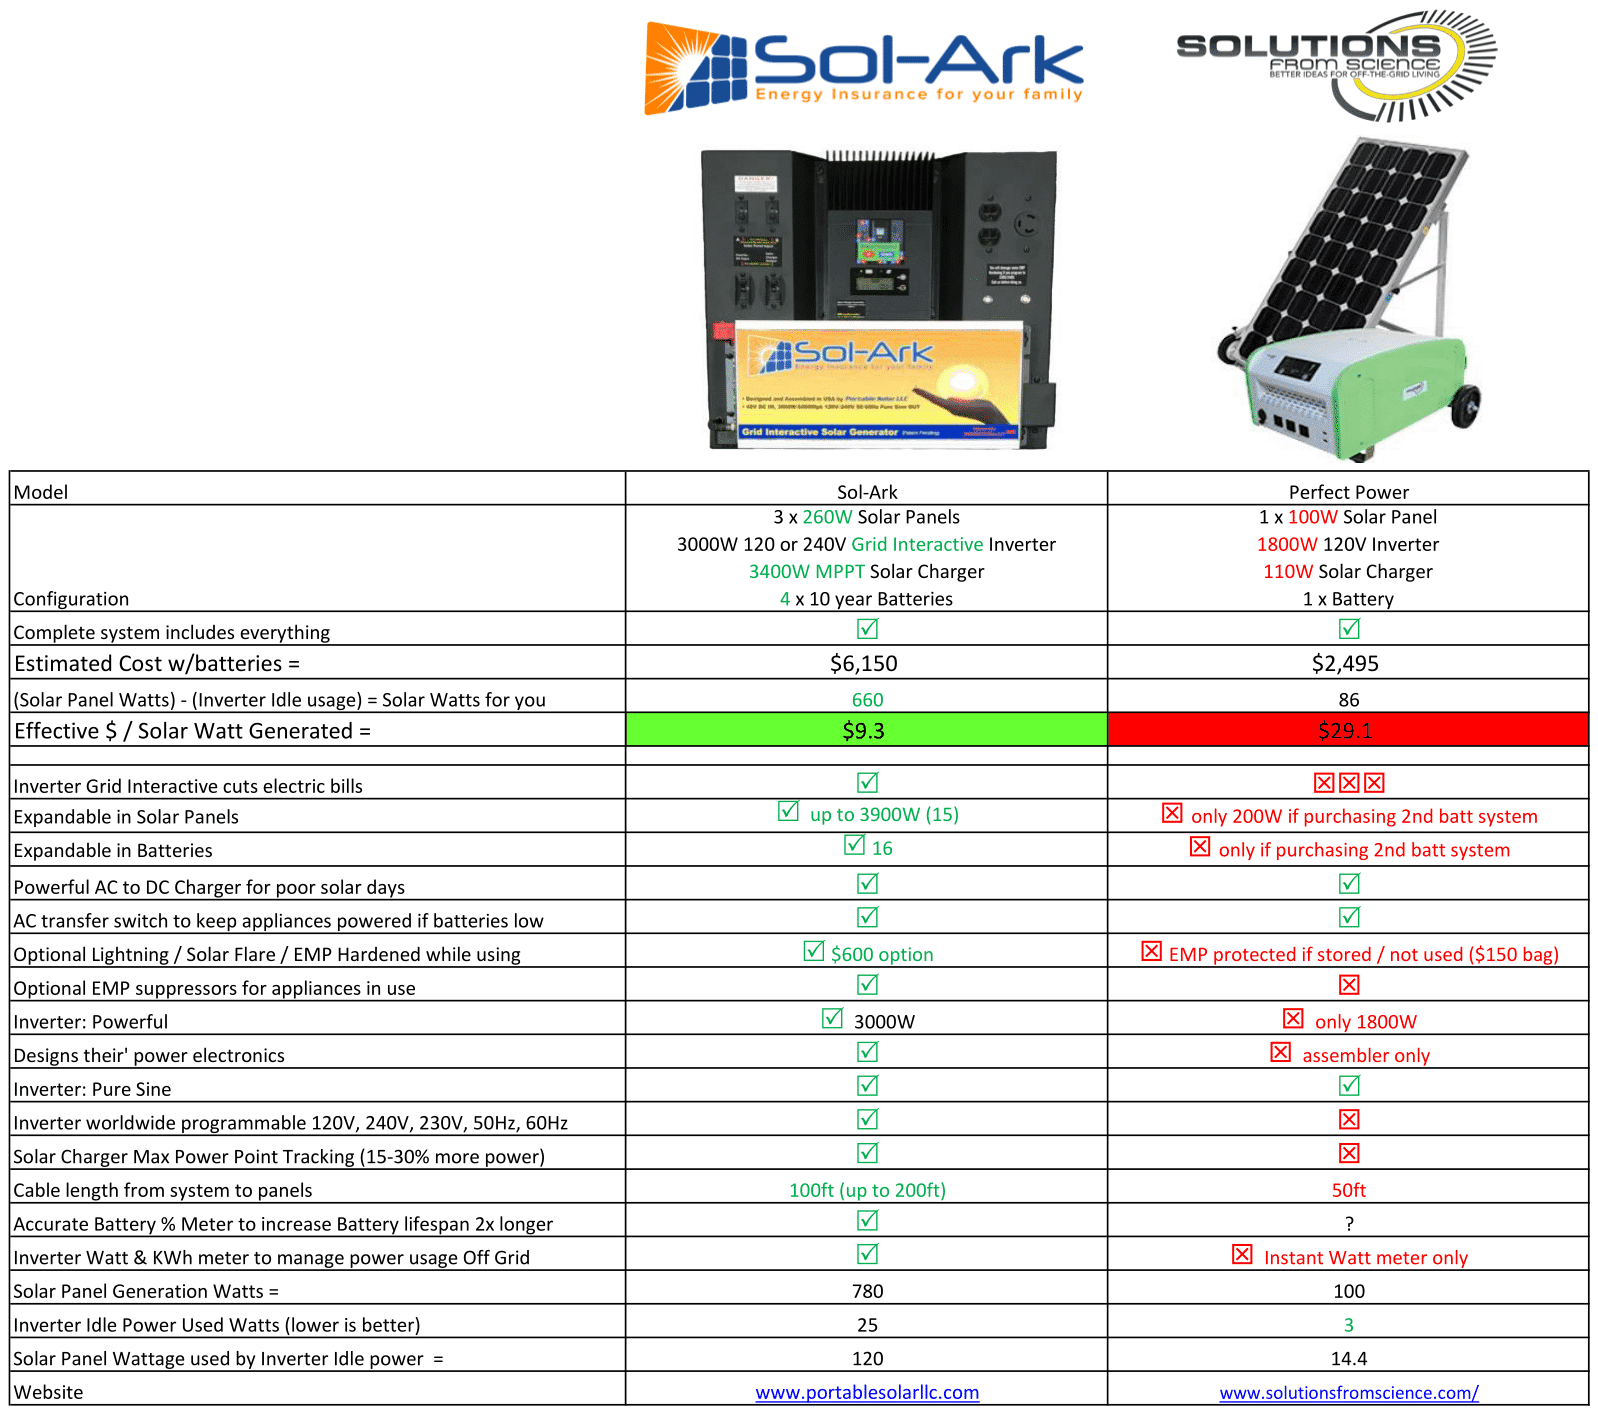 Compare Sol-Ark to Solutions from Science